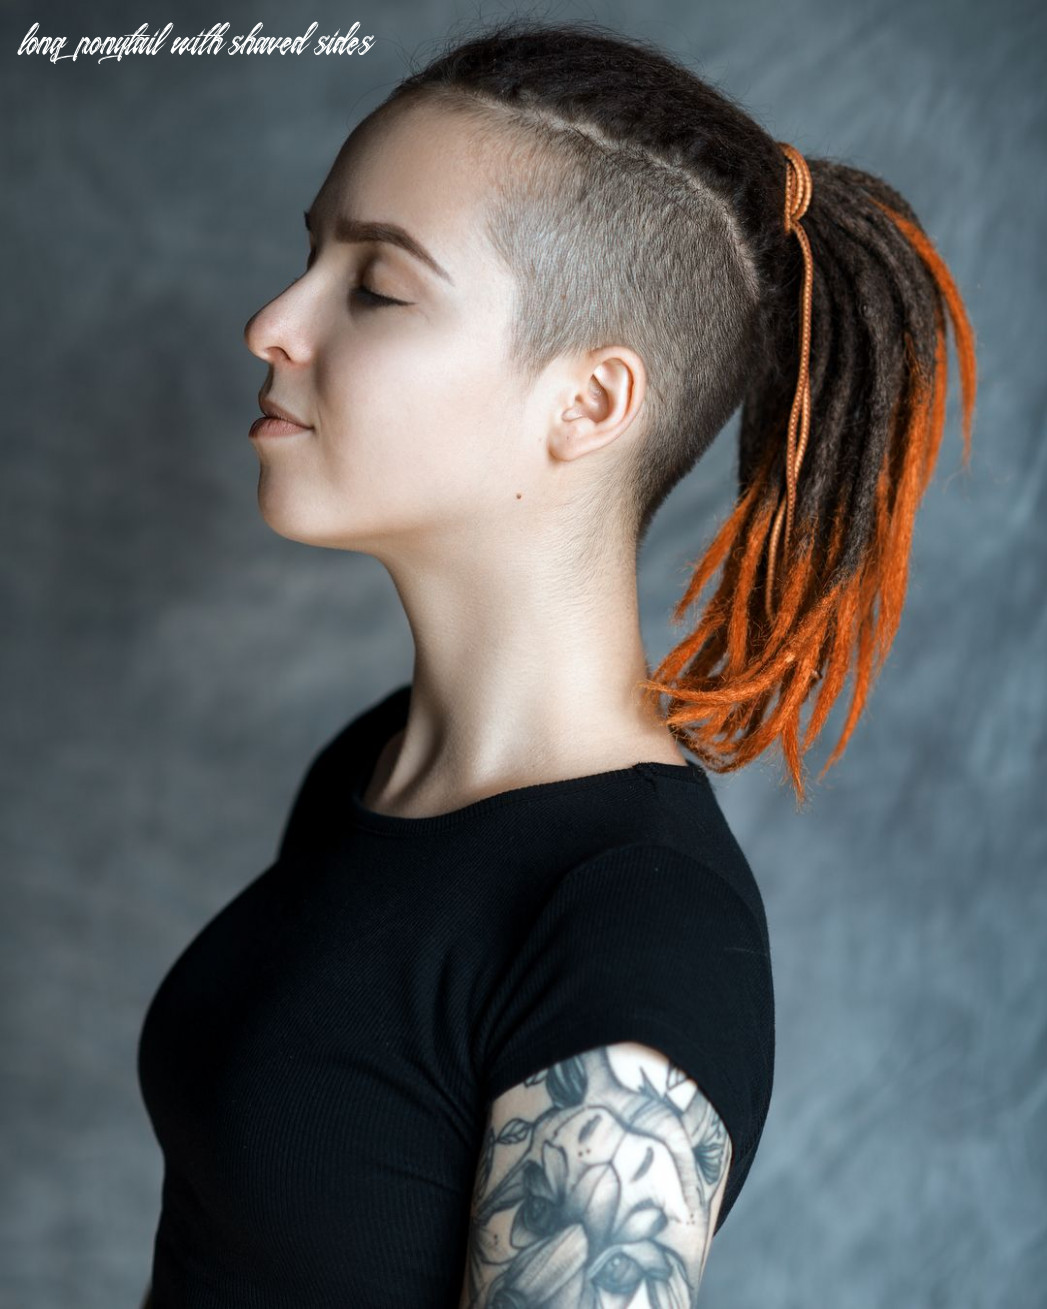 Dreadlock girl with shaved sides and ponytail   Короткие дреды